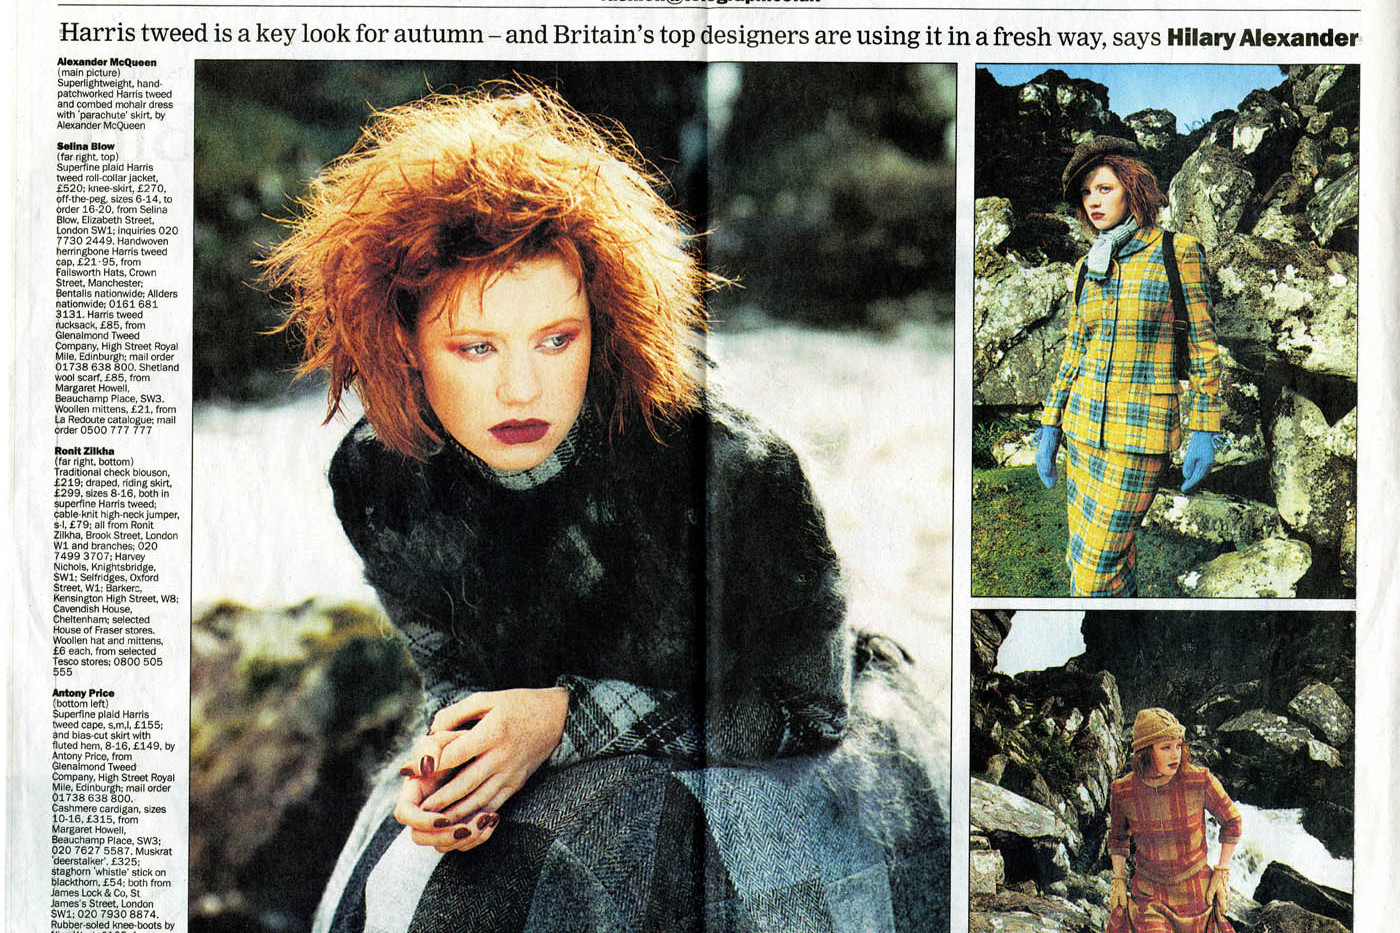 Daily Telegraph feature on Harris Tweed